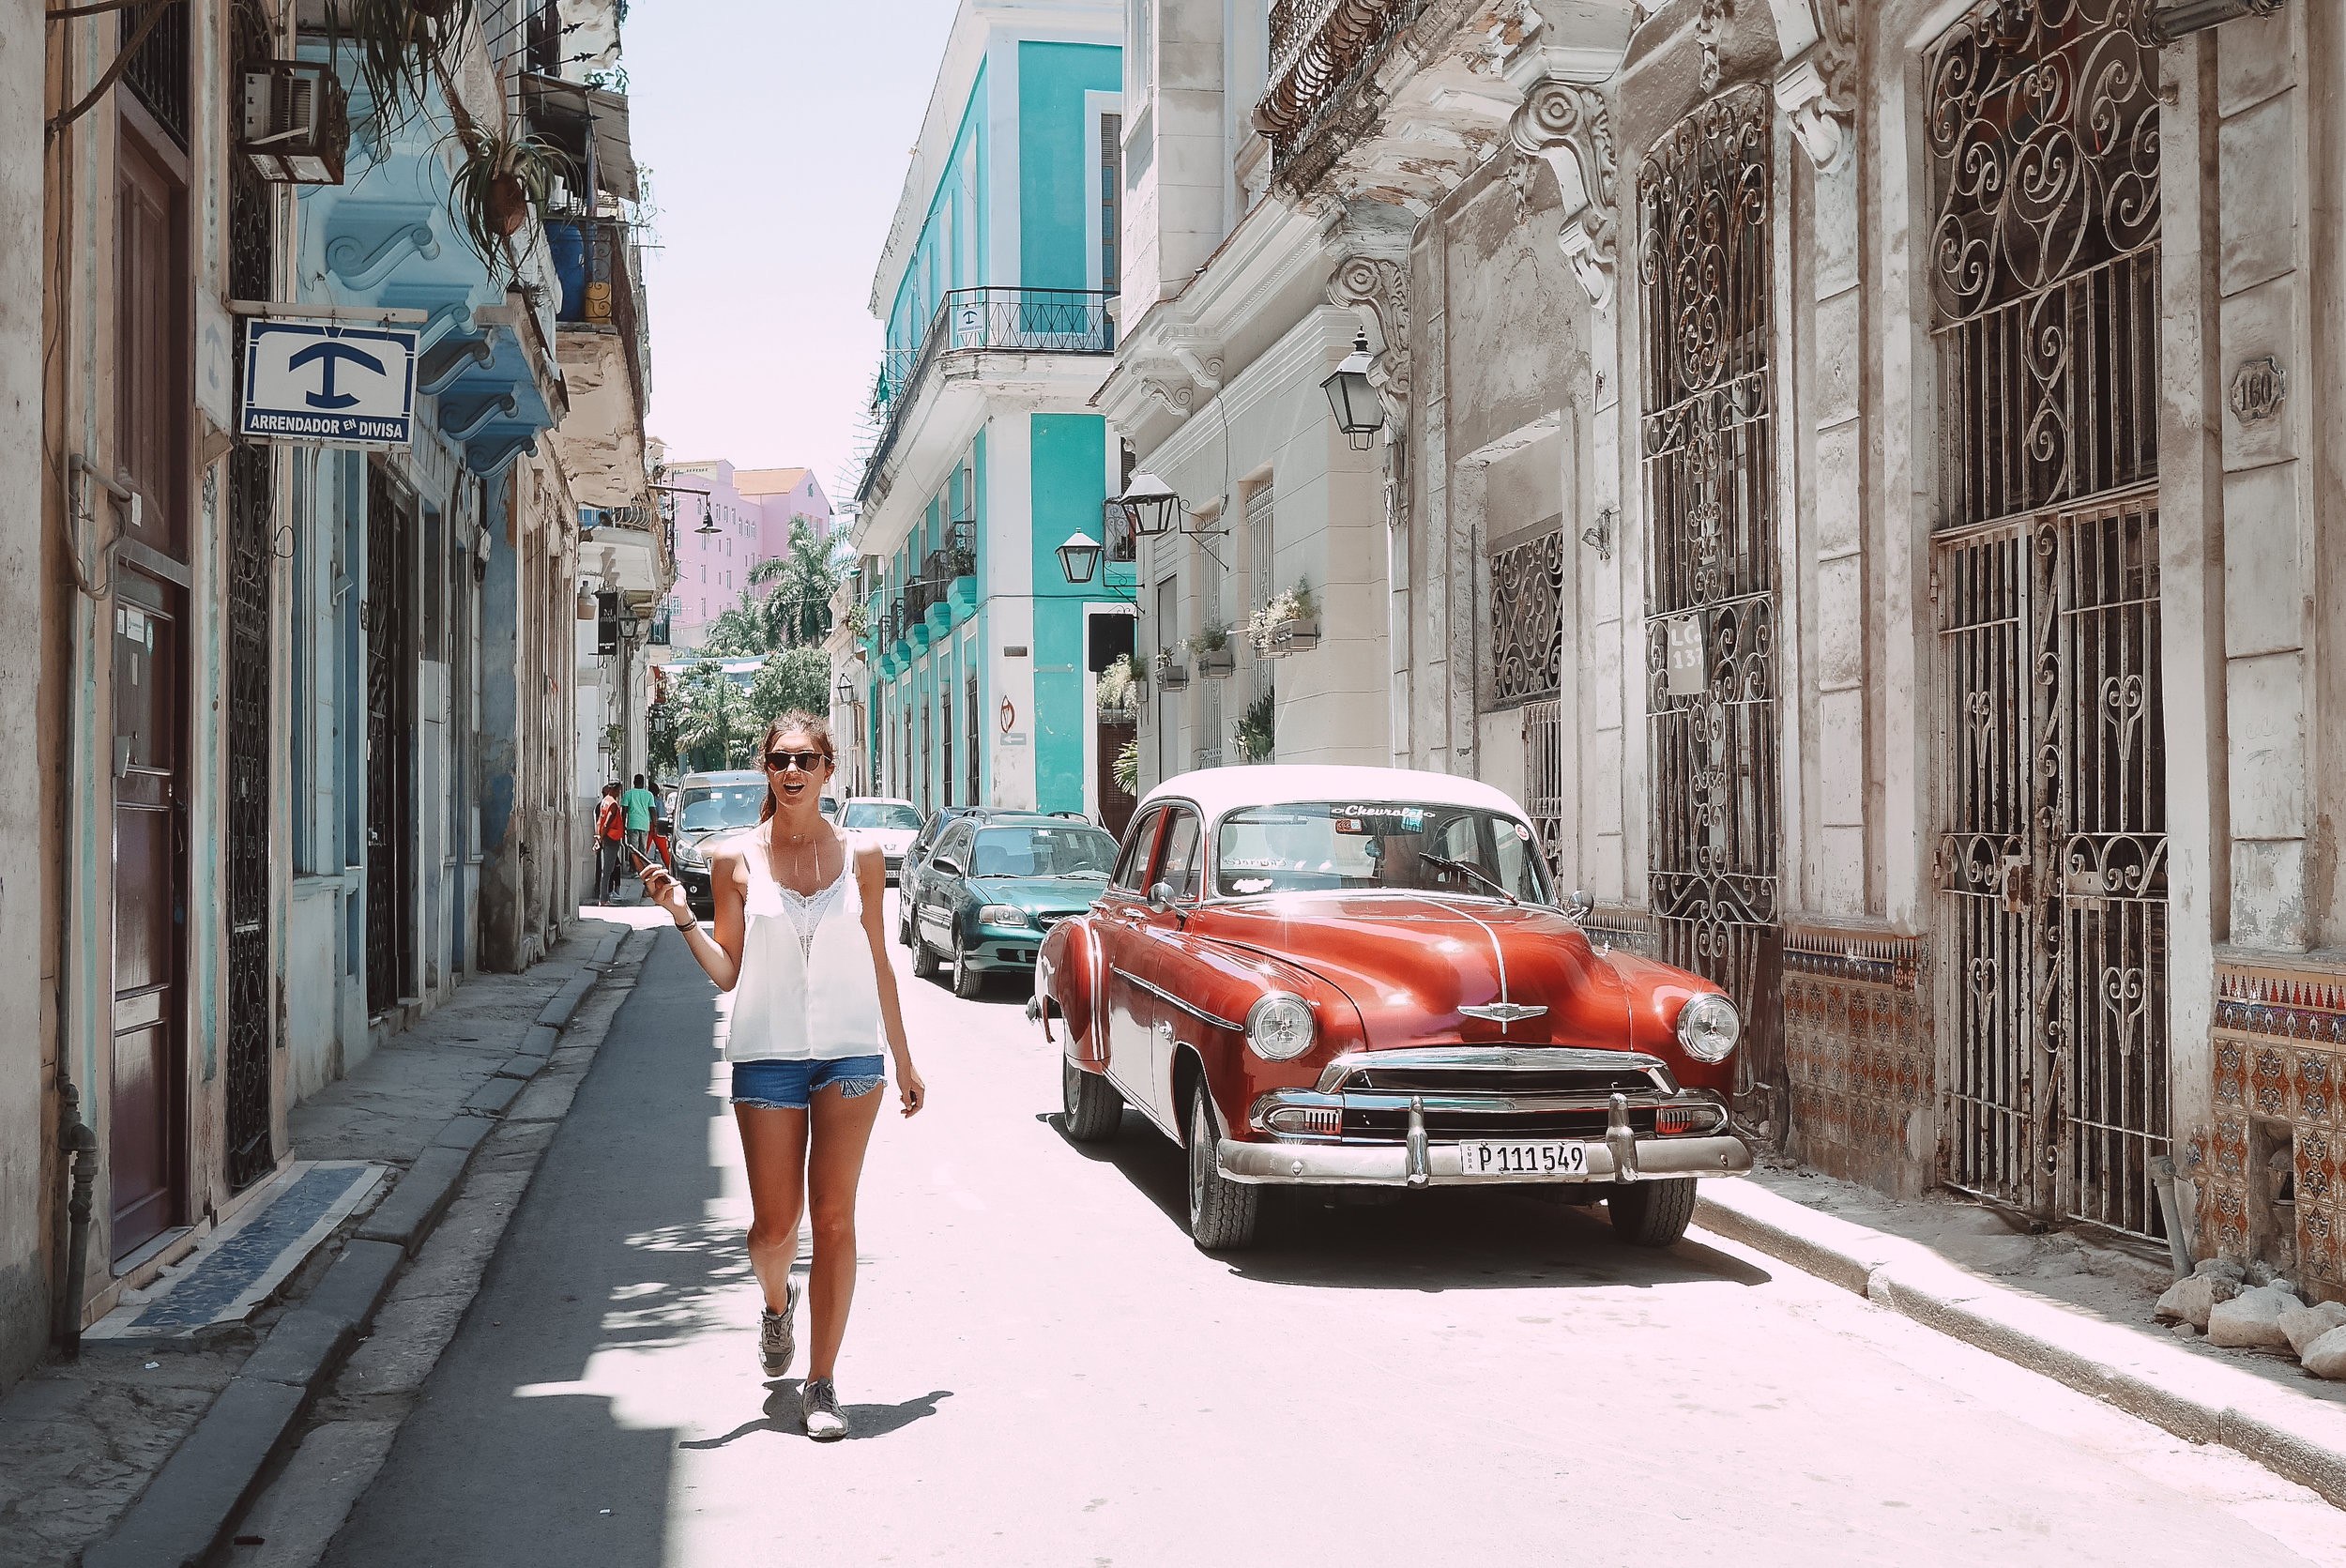 mathilde-schwindowsky-the-cheerfulist-cuba-la-havane